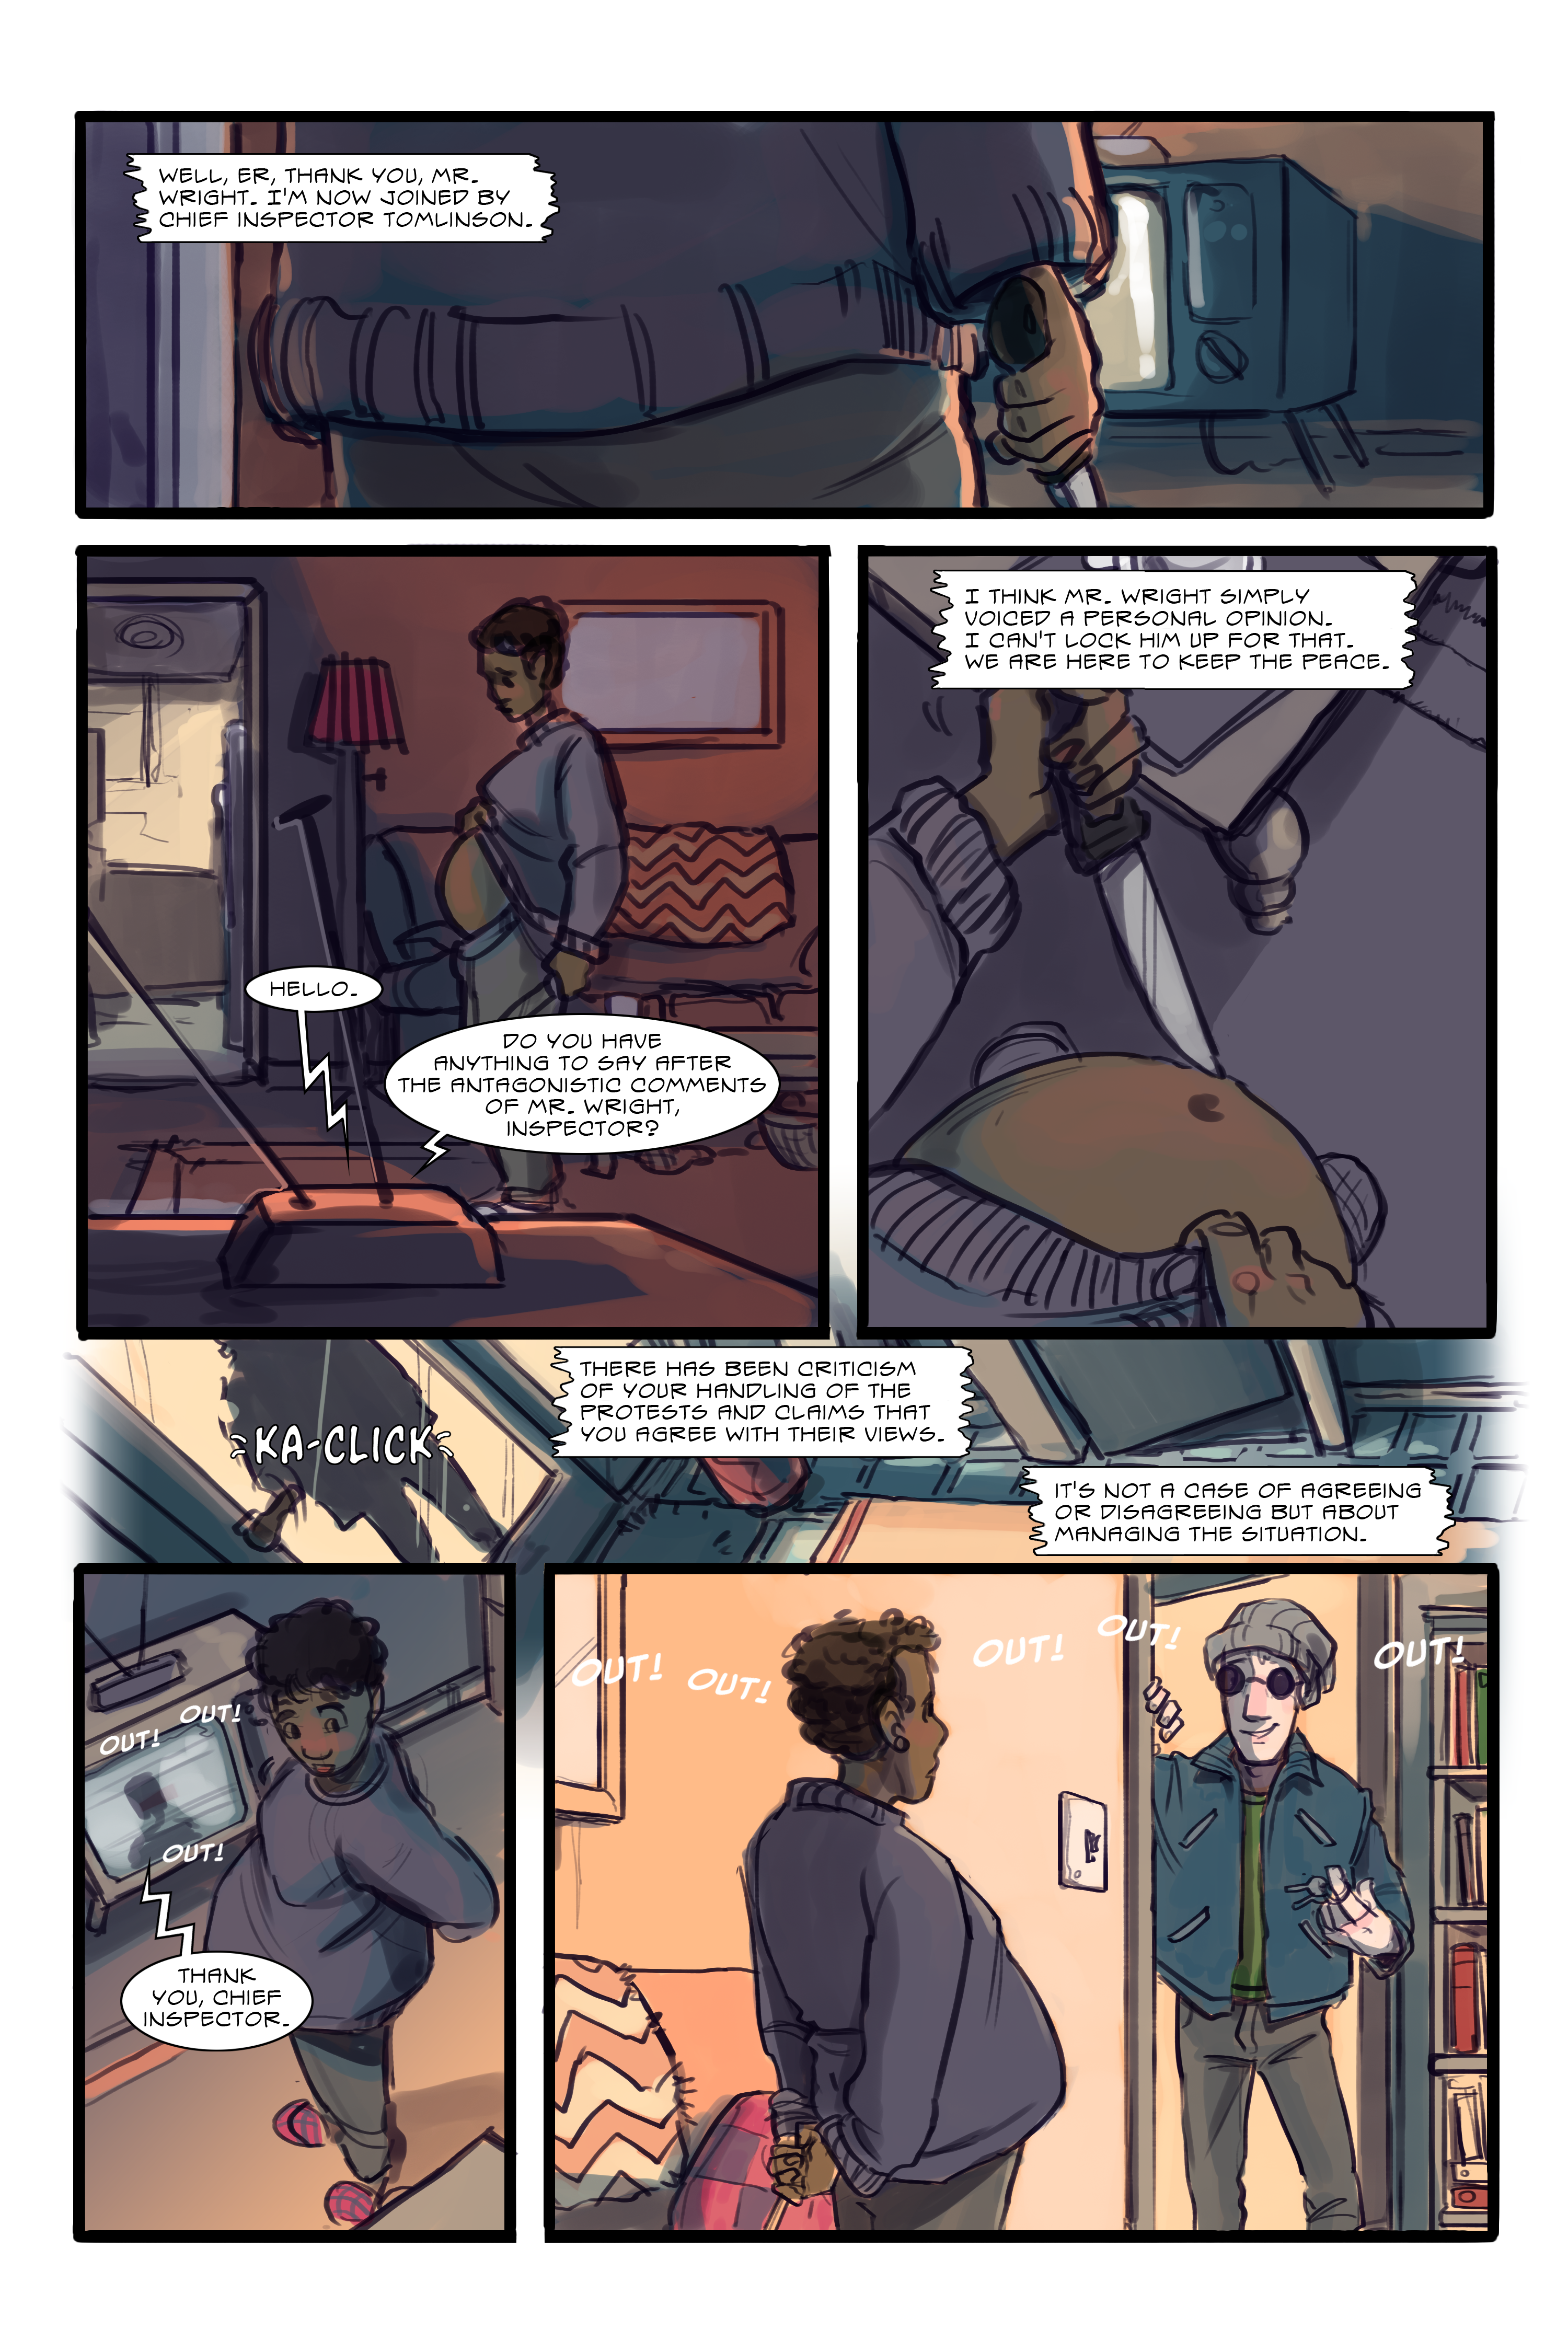 Outre (Issue #3): Out! Out! Out!